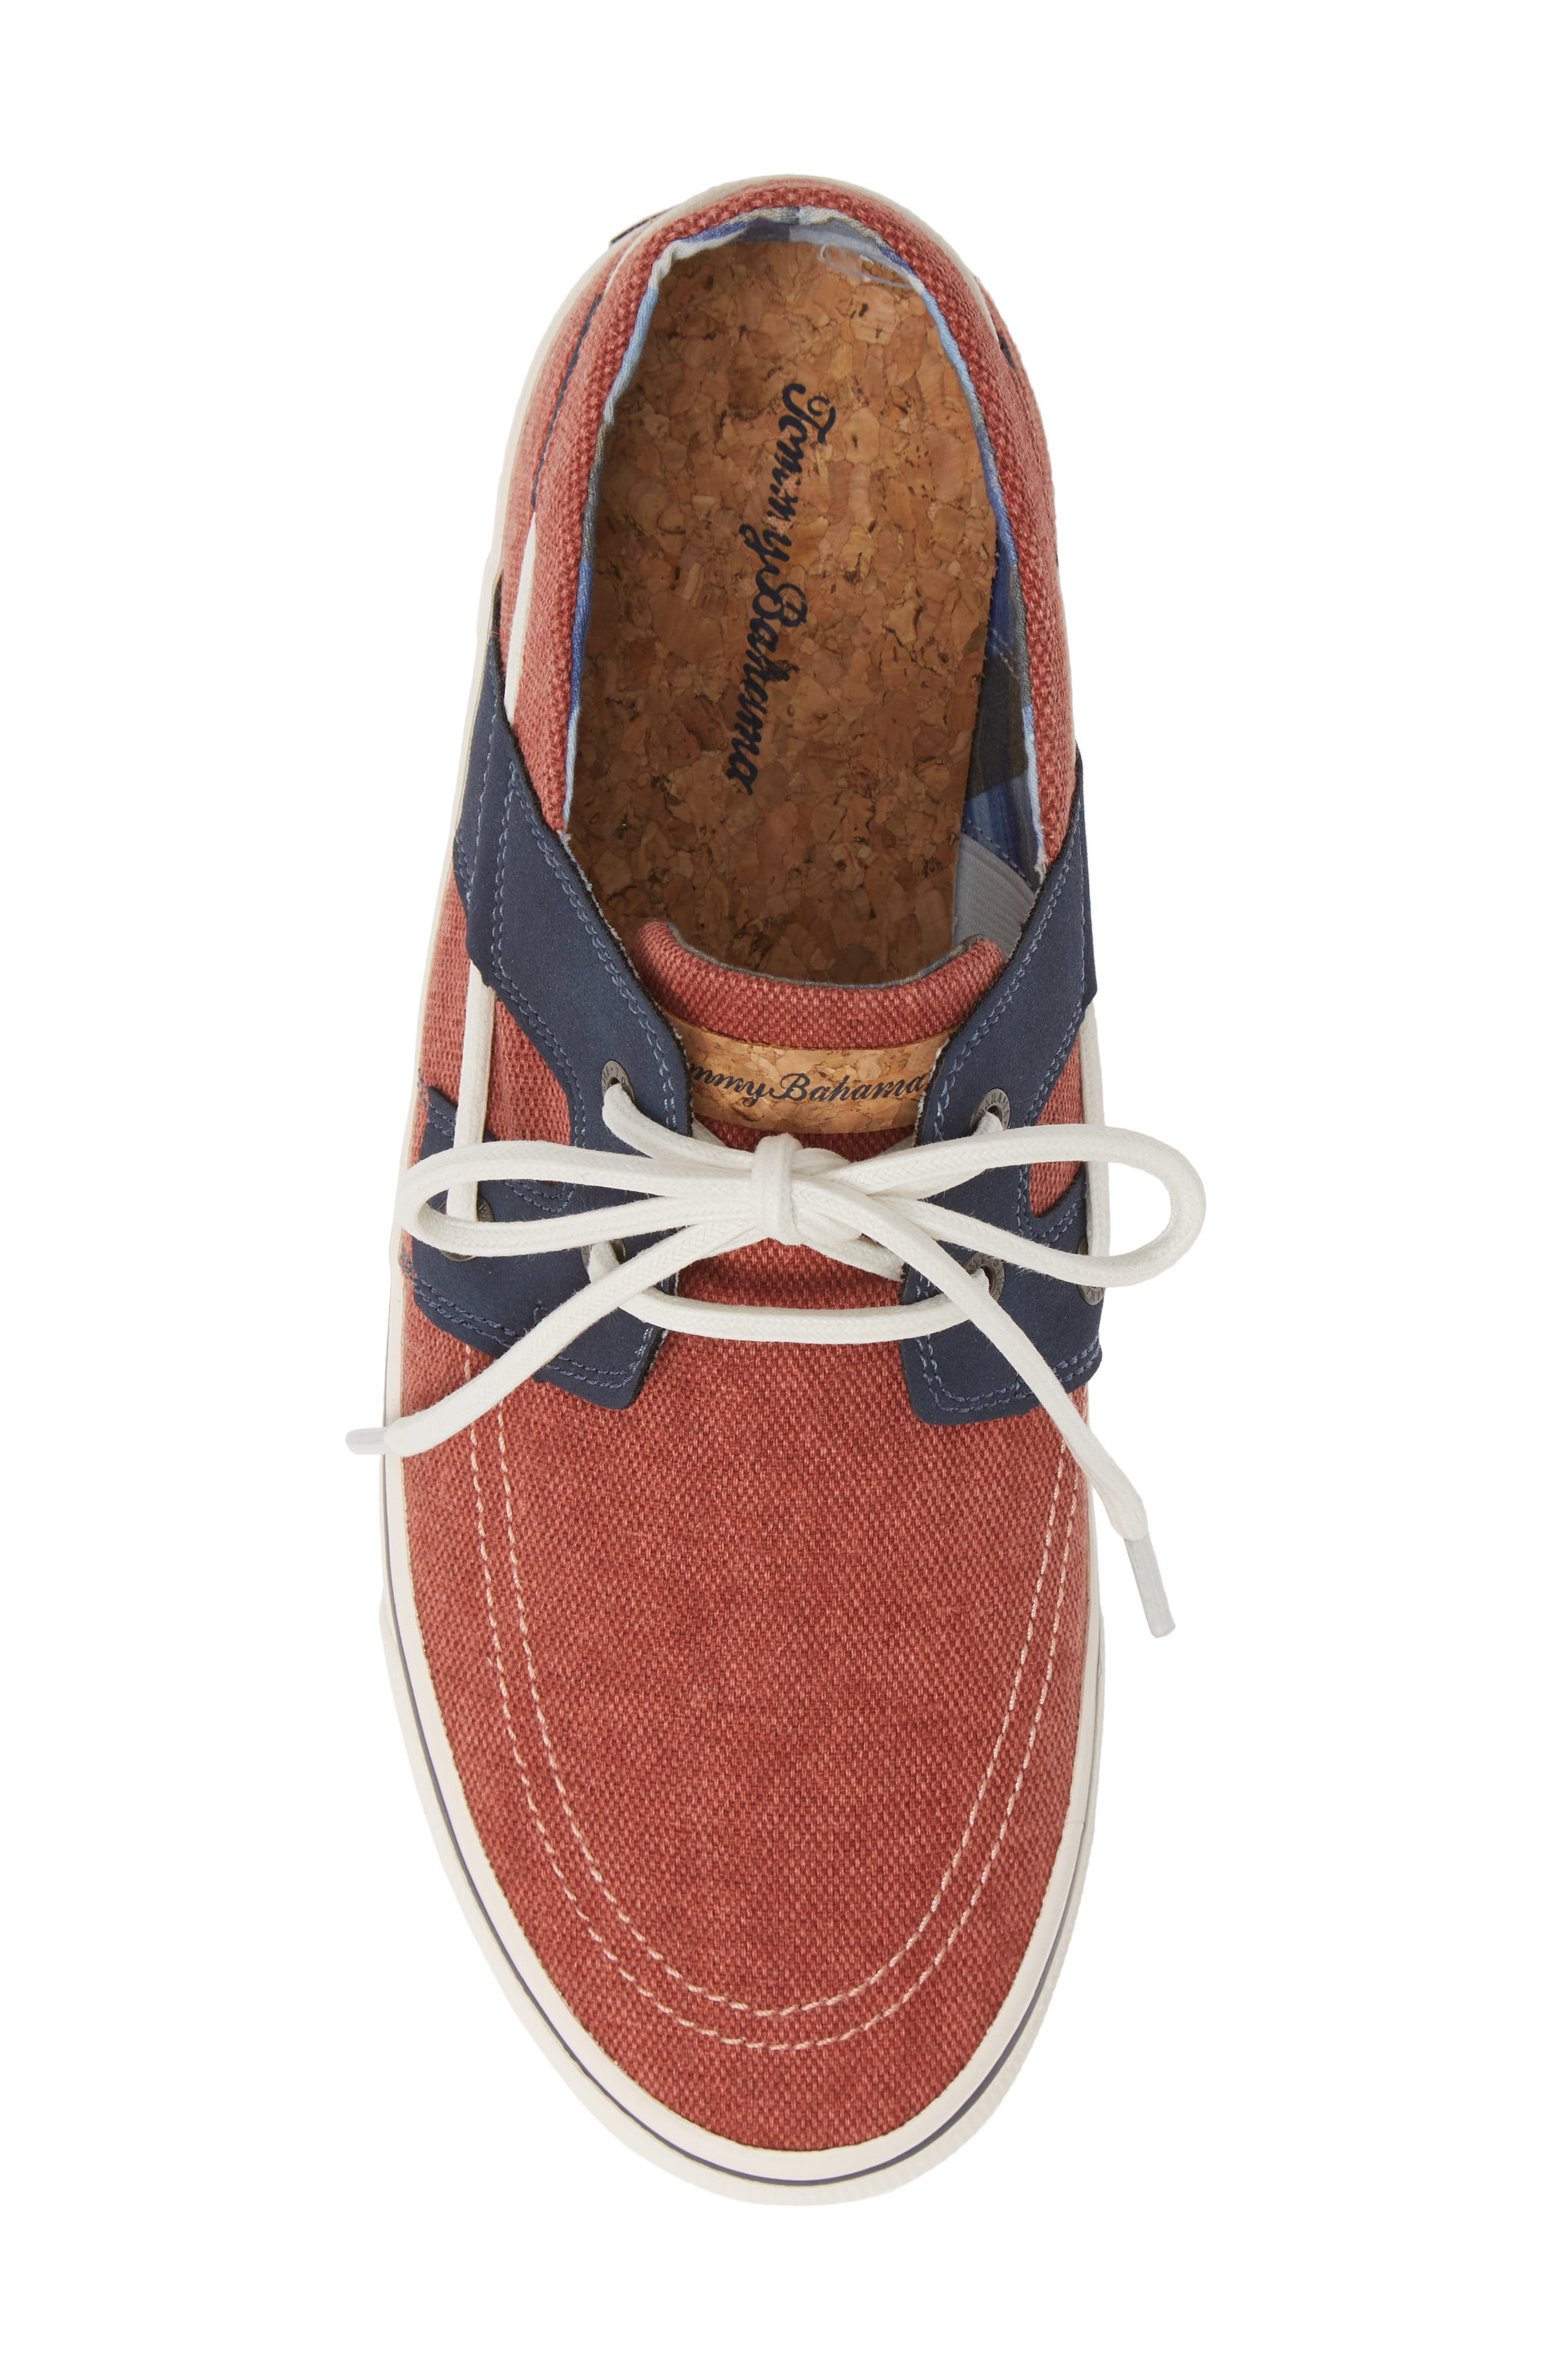 TOMMY BAHAMA, Stripe Breaker Sneaker, Alternate thumbnail 5, color, RED WASHED CANVAS/ LEATHER